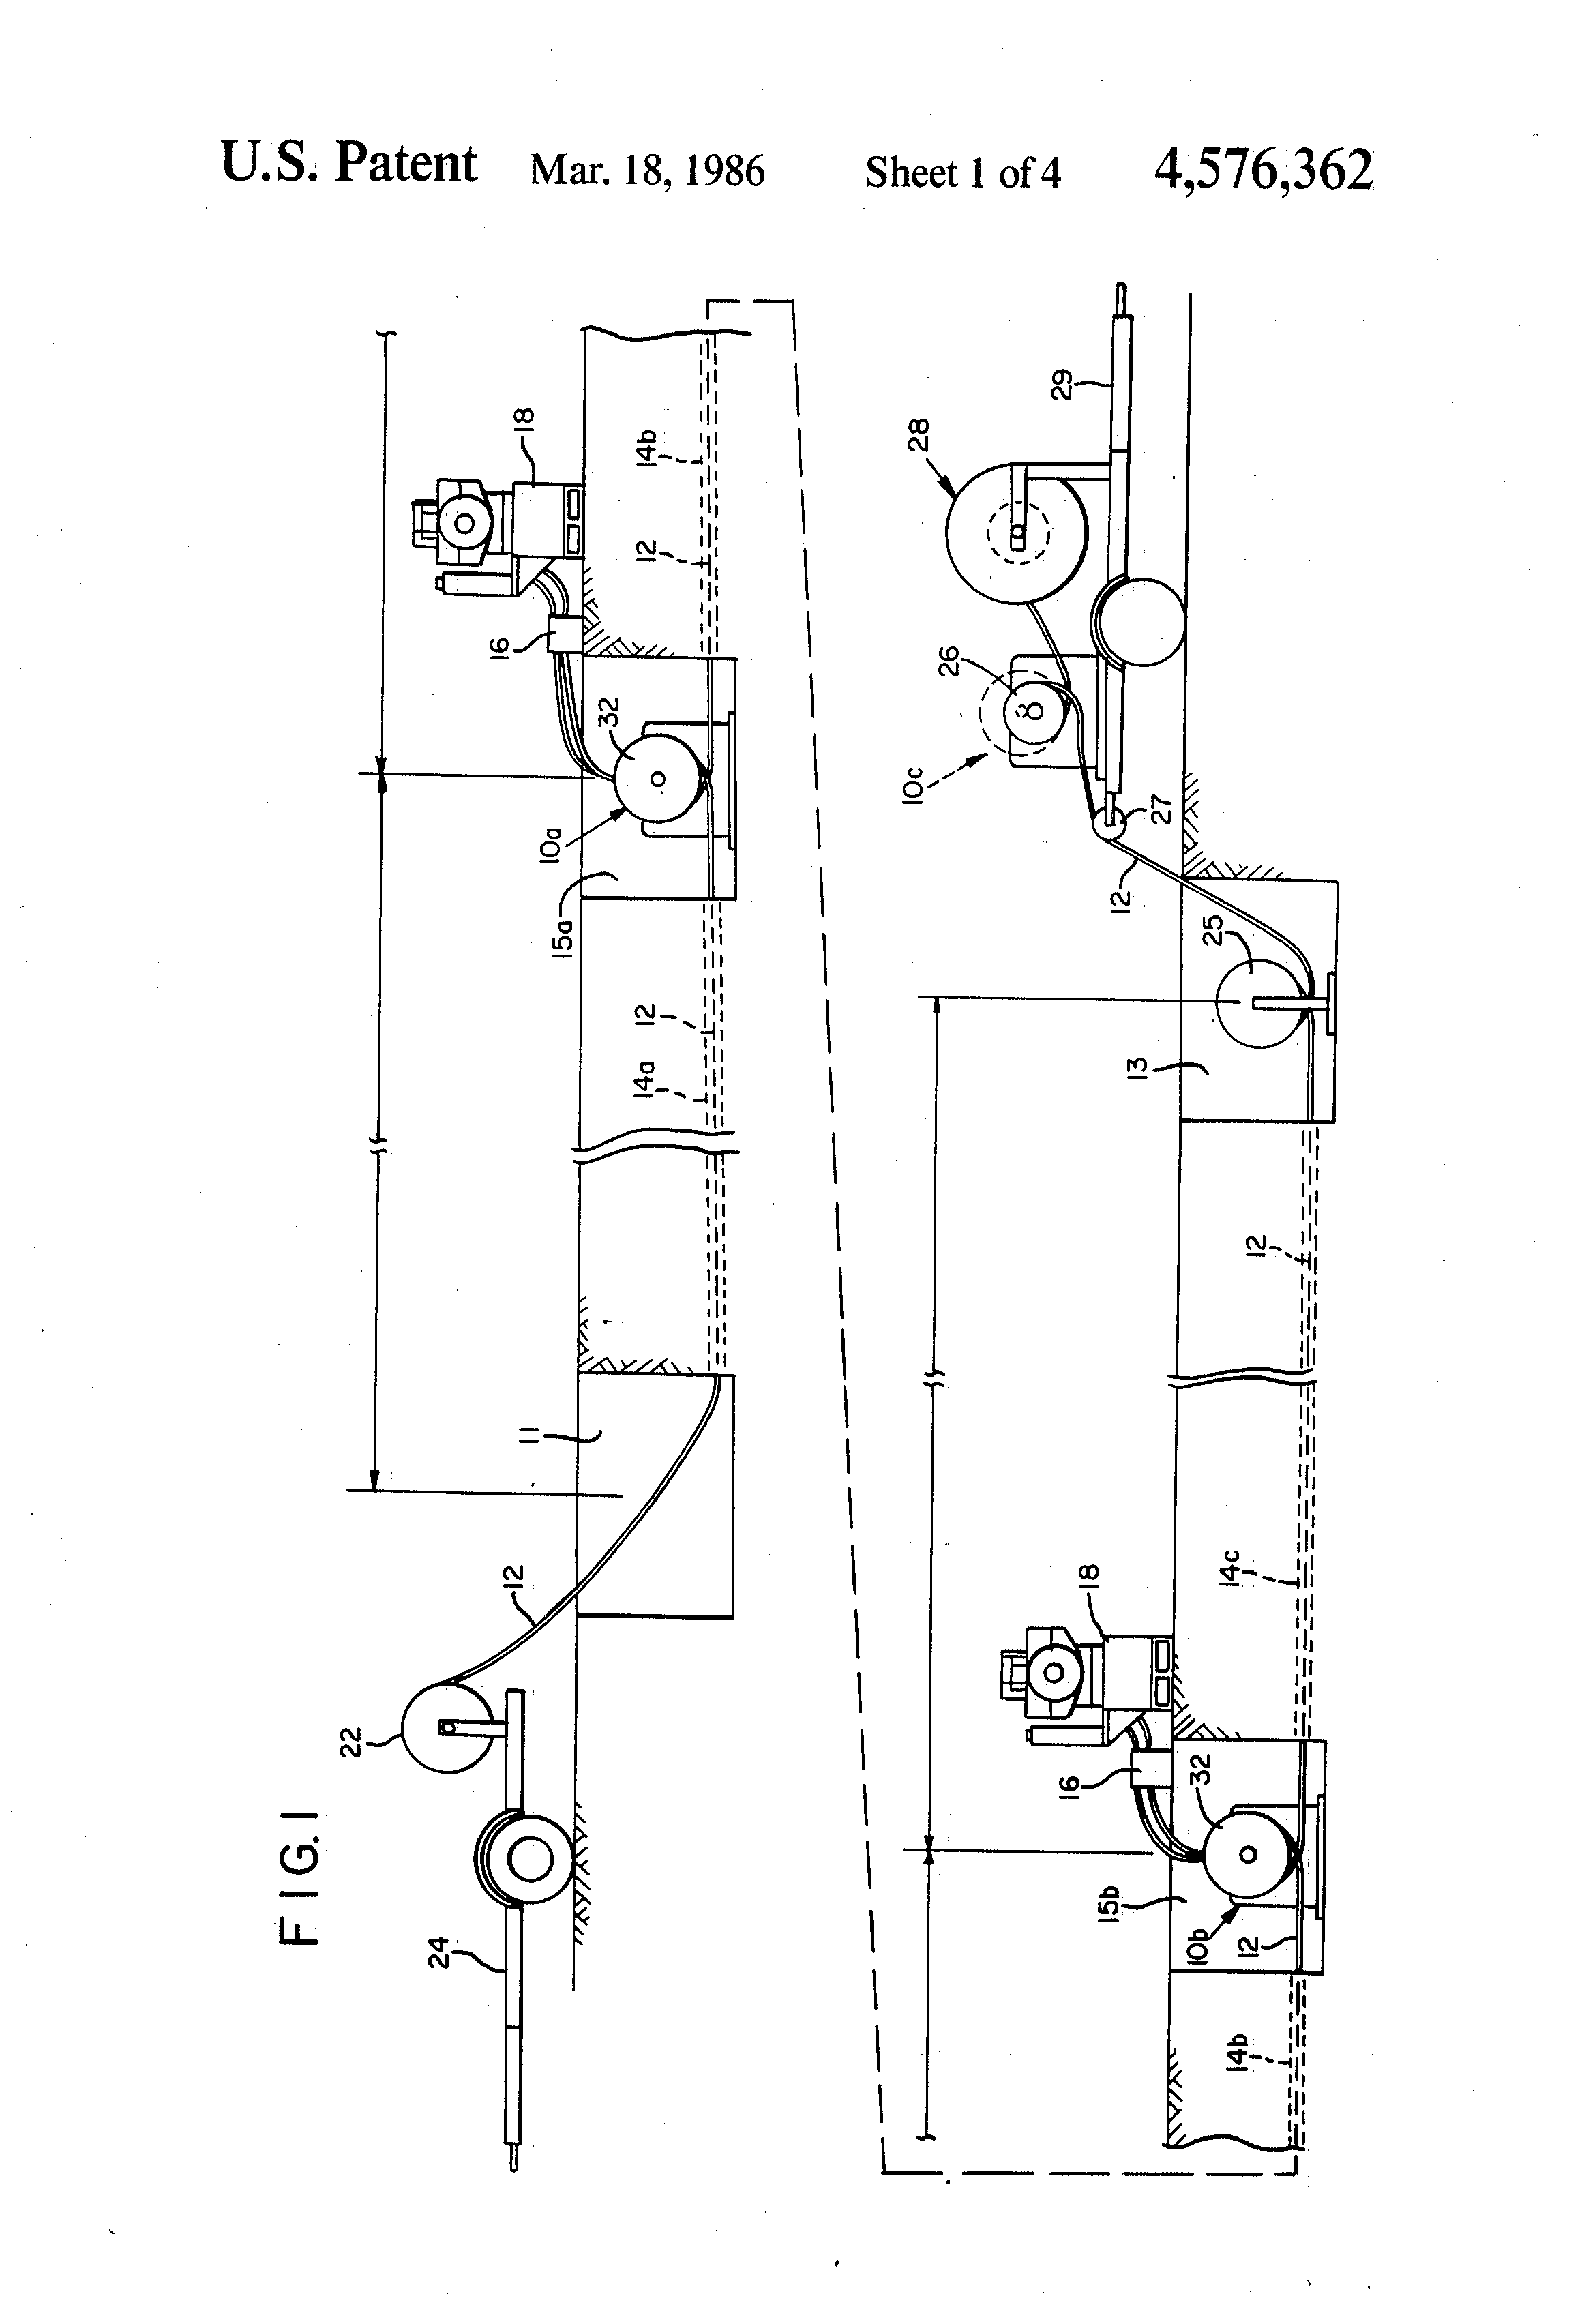 Brevet Us4576362 Method For Pulling Long Runs Of Fiber Optic Cable Schematic Patent Drawing